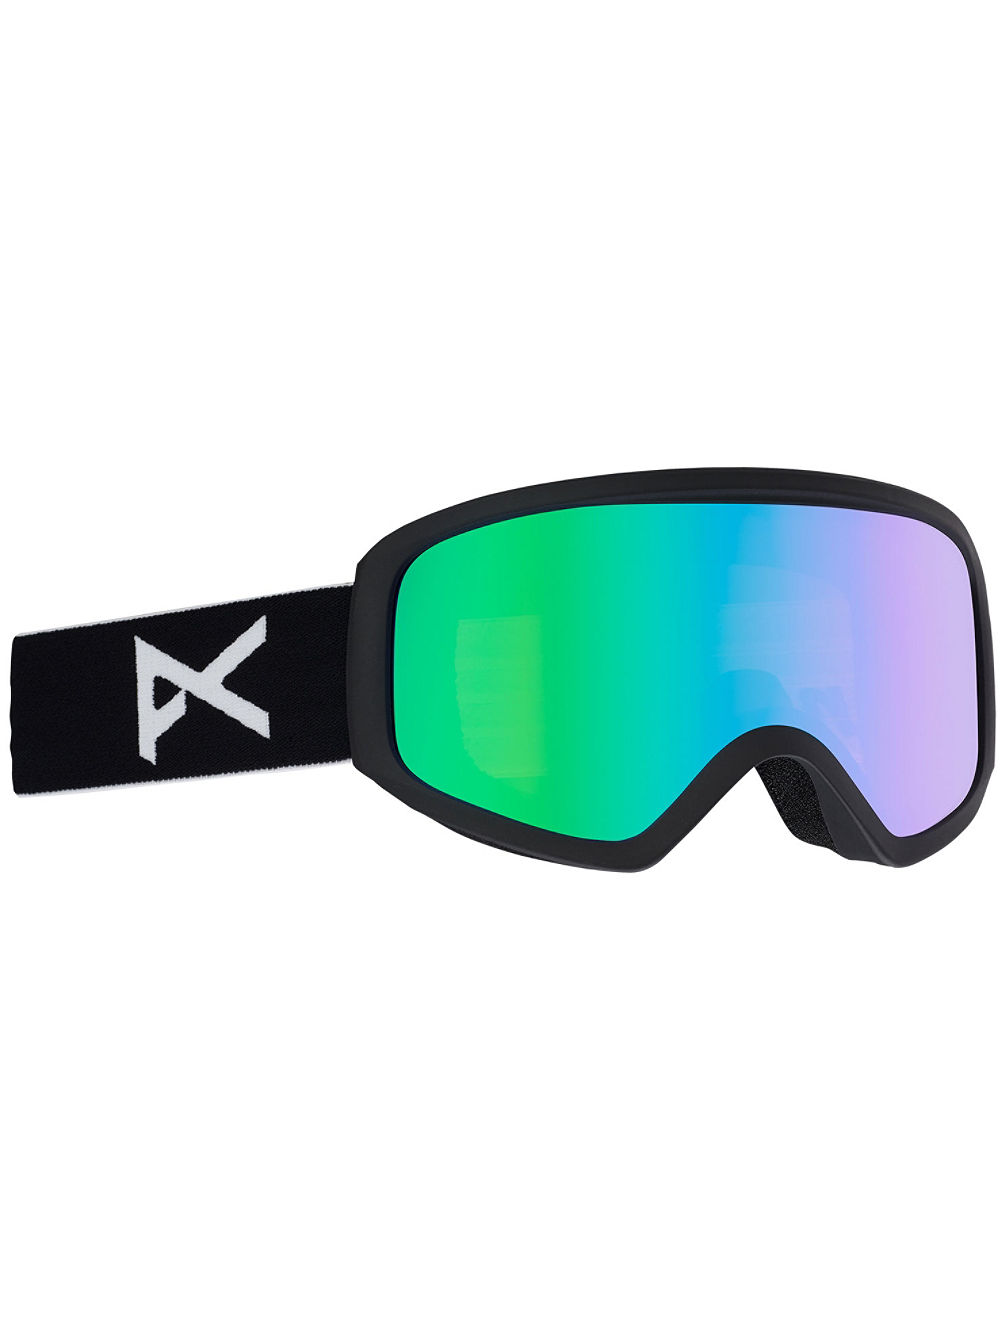 Insight Black(+Bonus Lens) Goggle